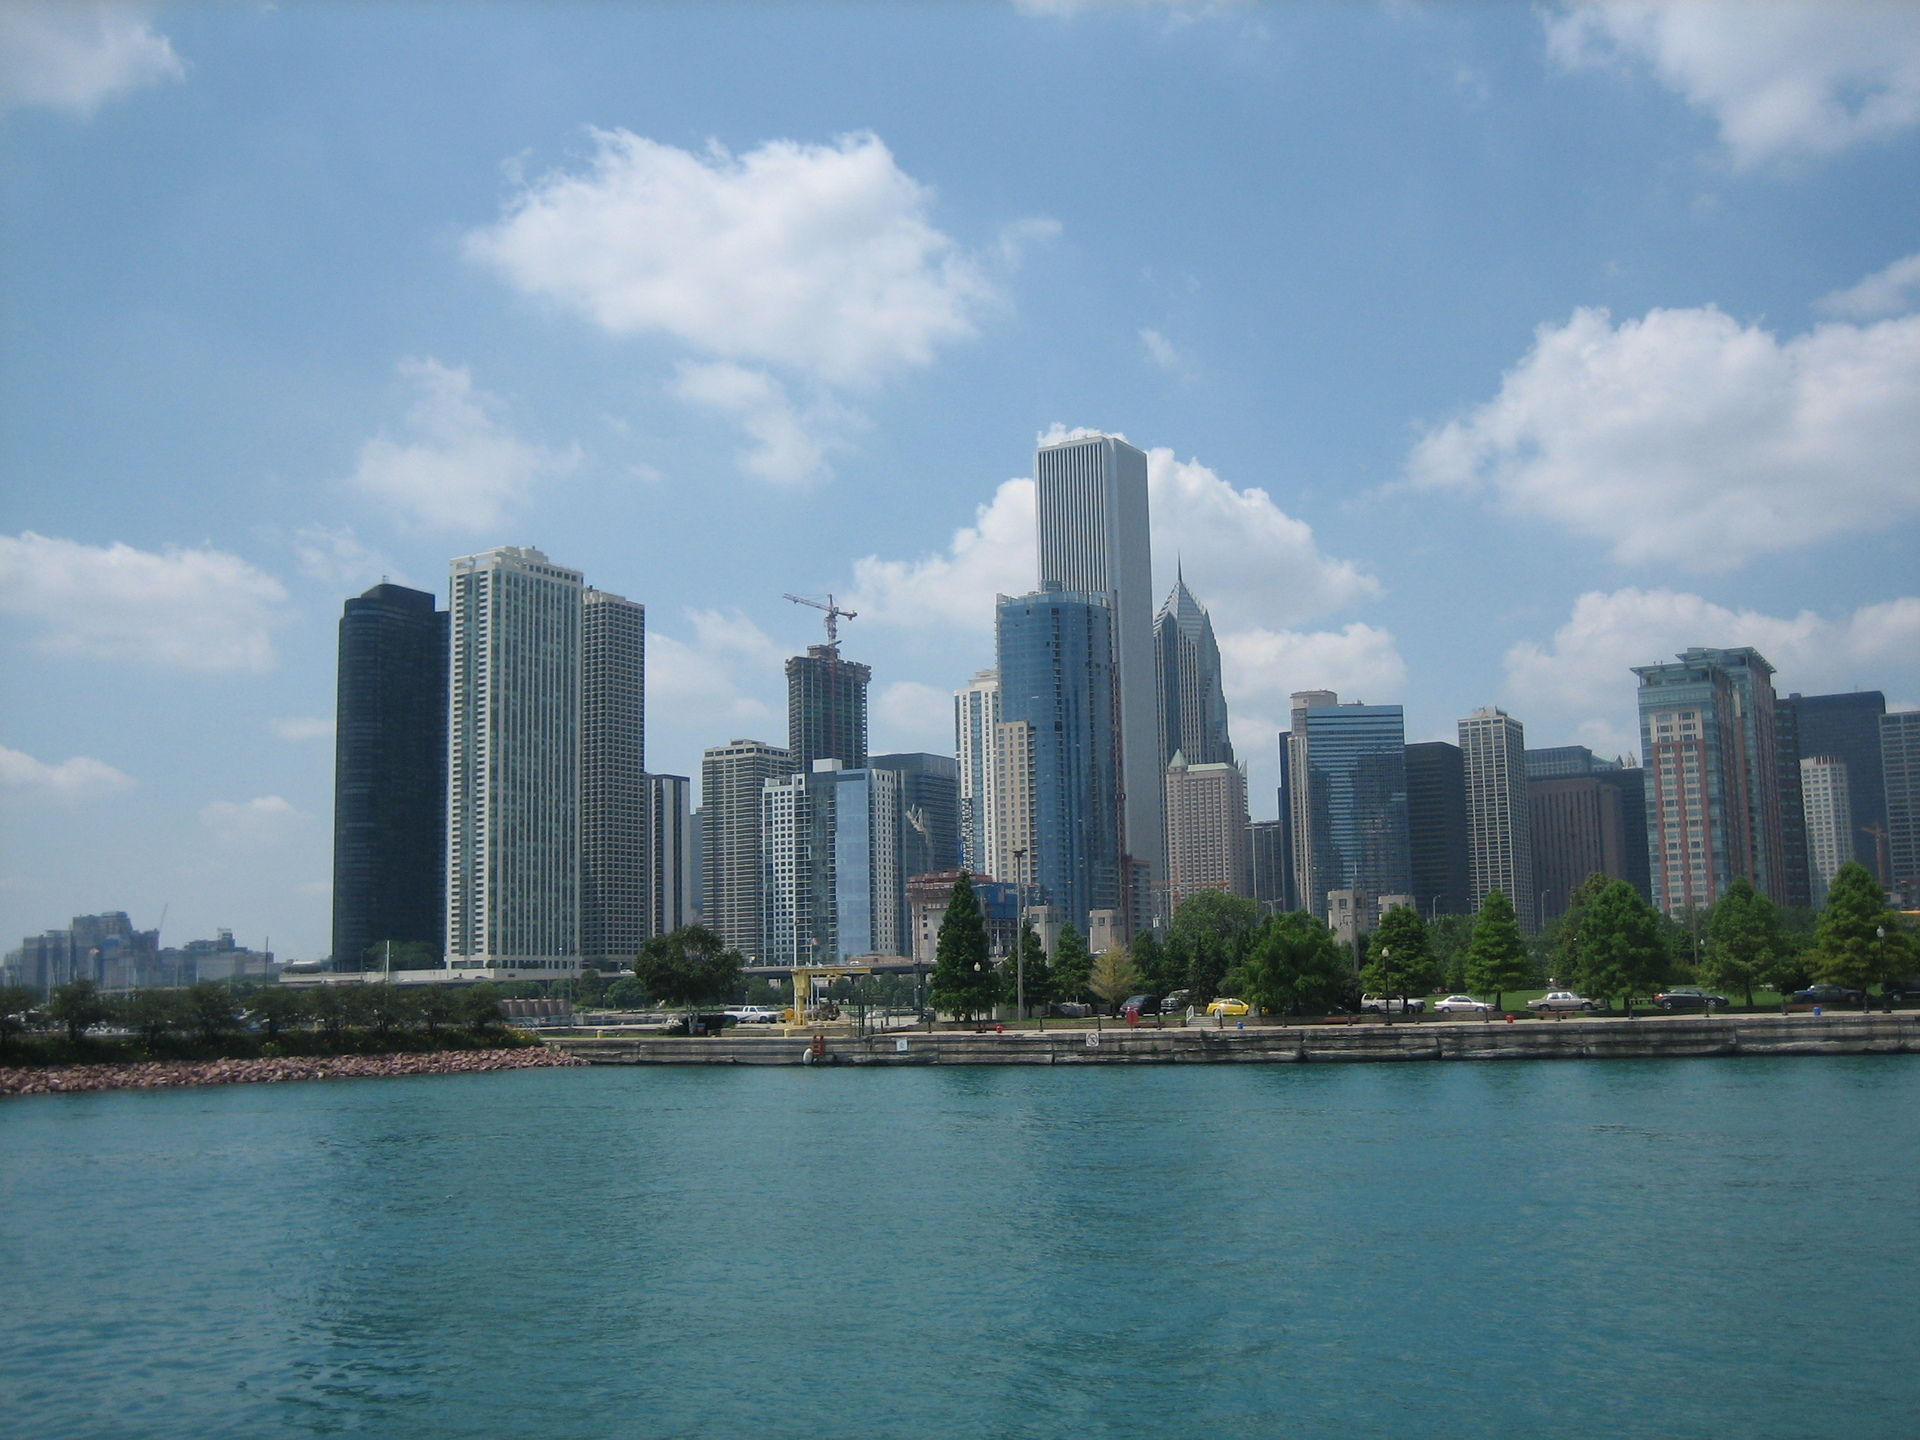 chicago skyline Chicago skyline puzzle in street view jigsaw puzzles on thejigsawpuzzlescom play full screen, enjoy puzzle of the day and thousands more.